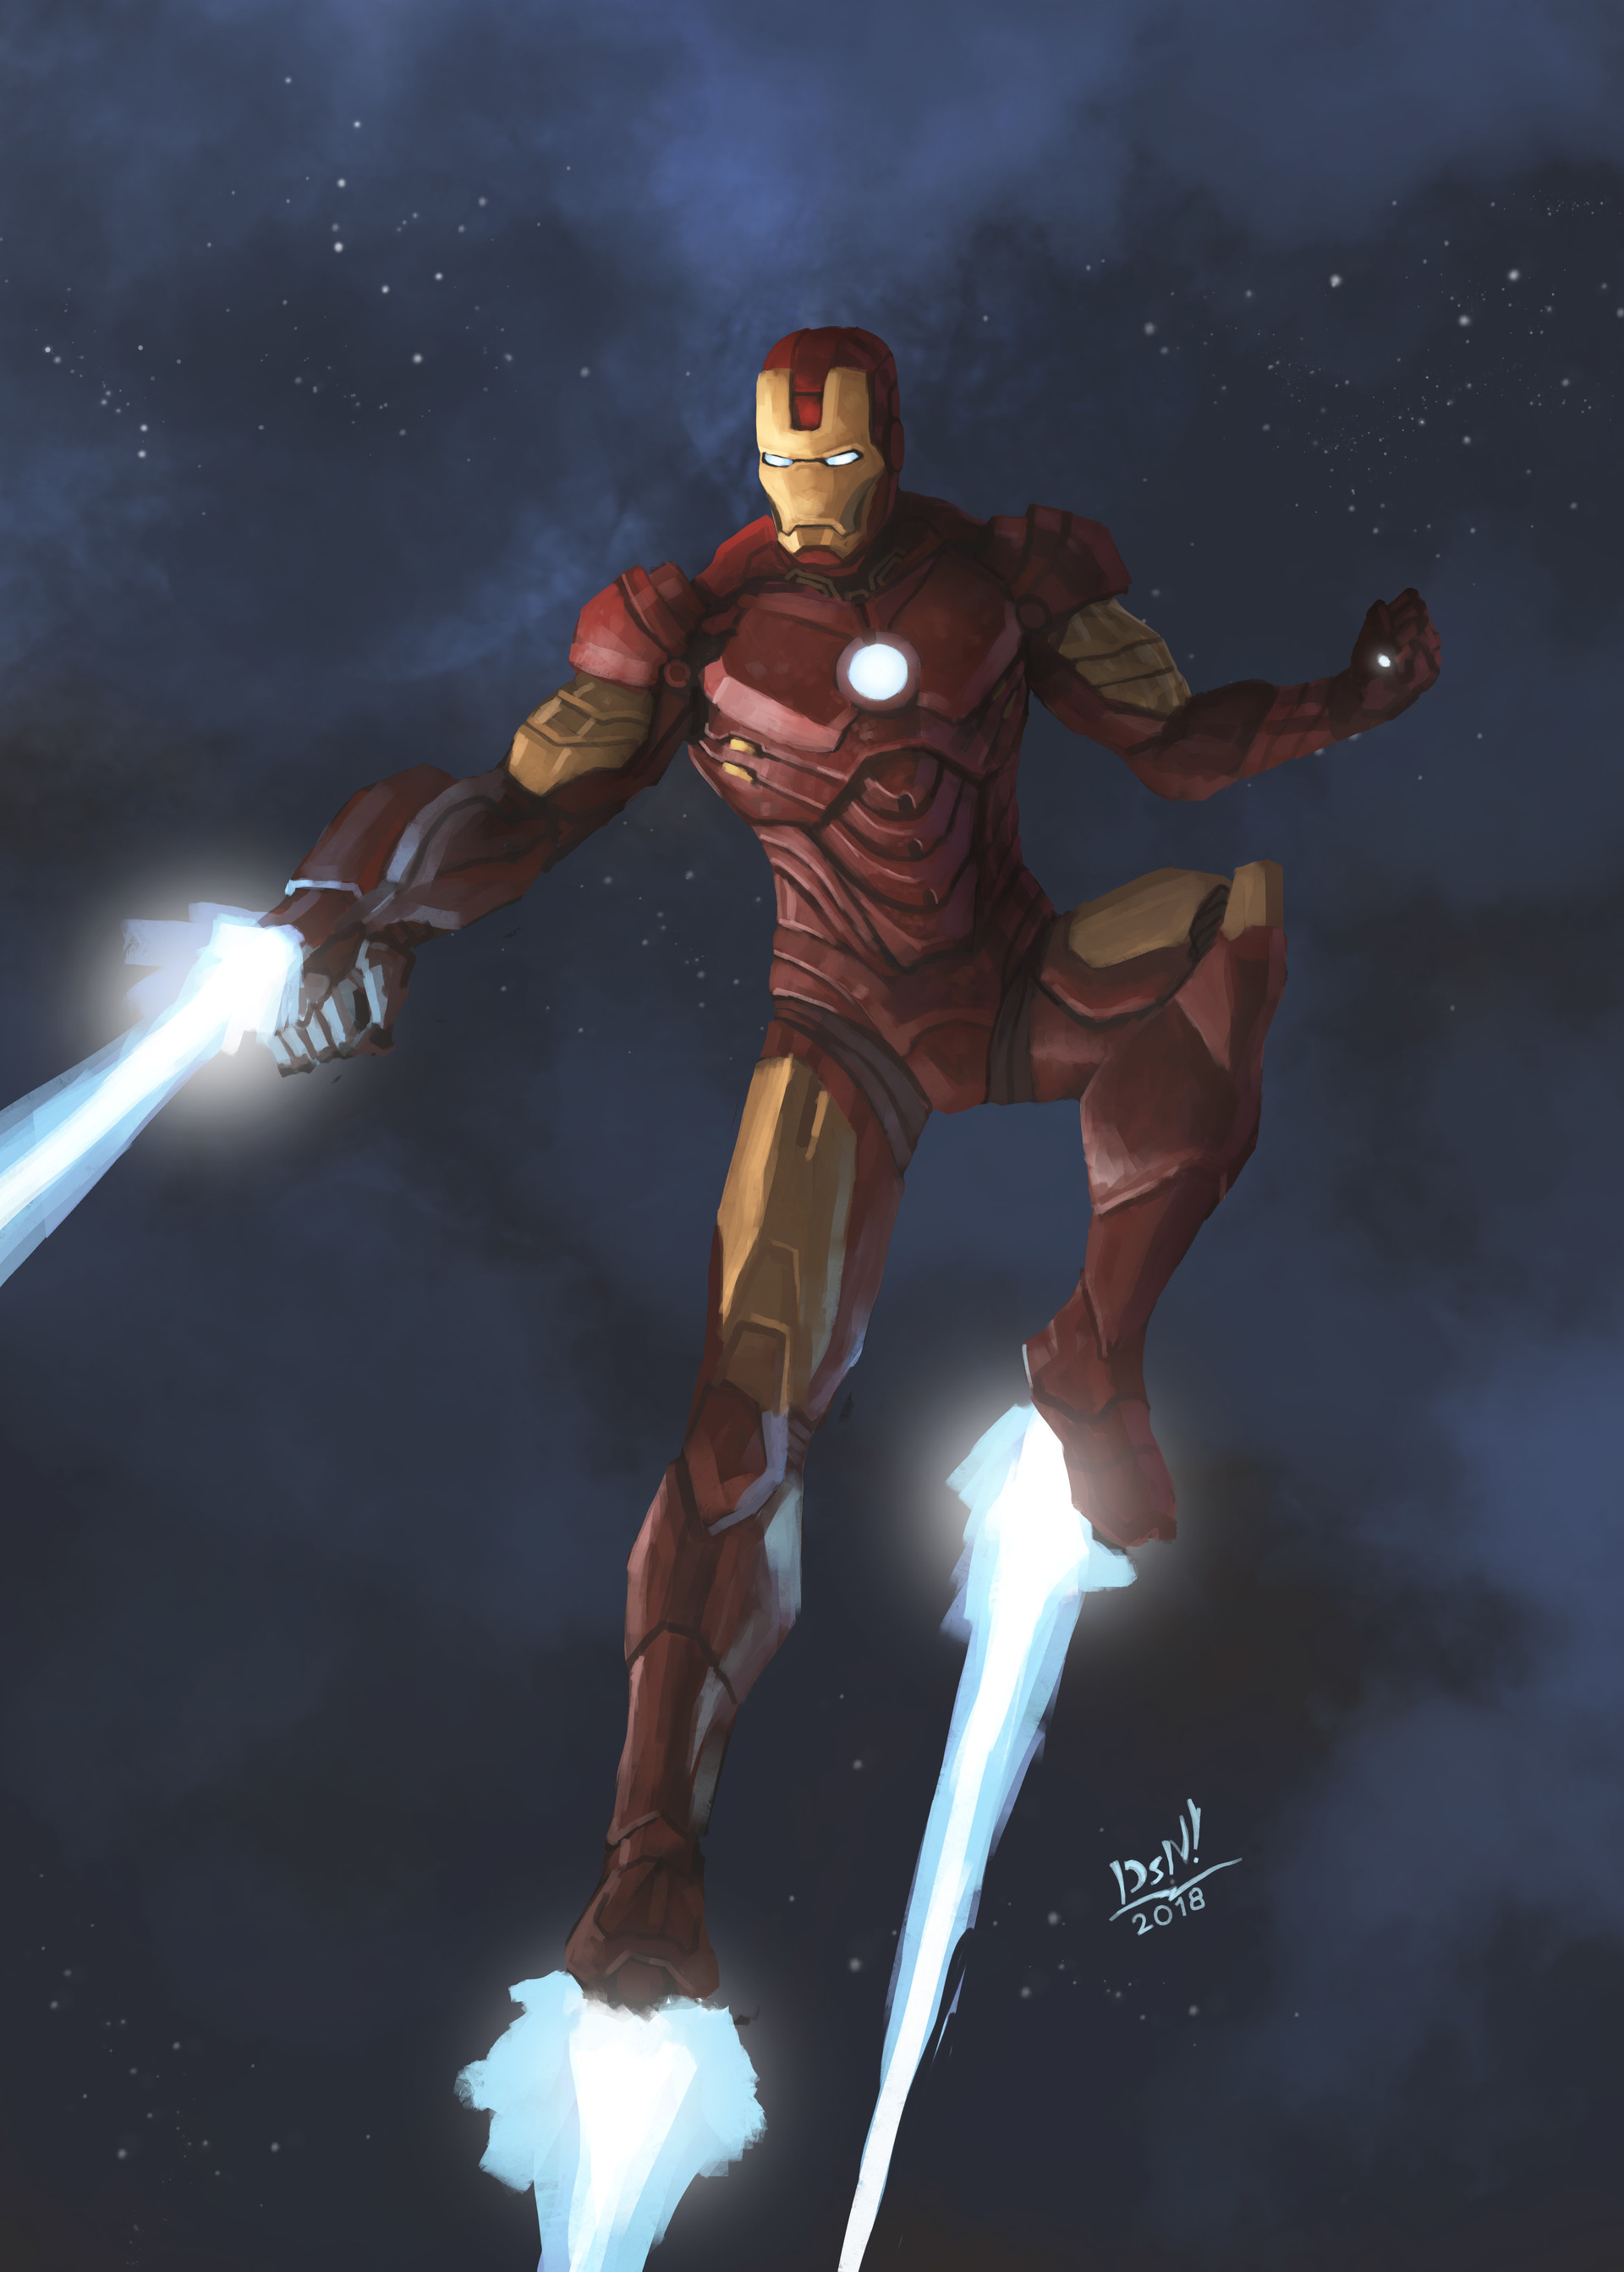 dastan tebegen - iron man (fan art)